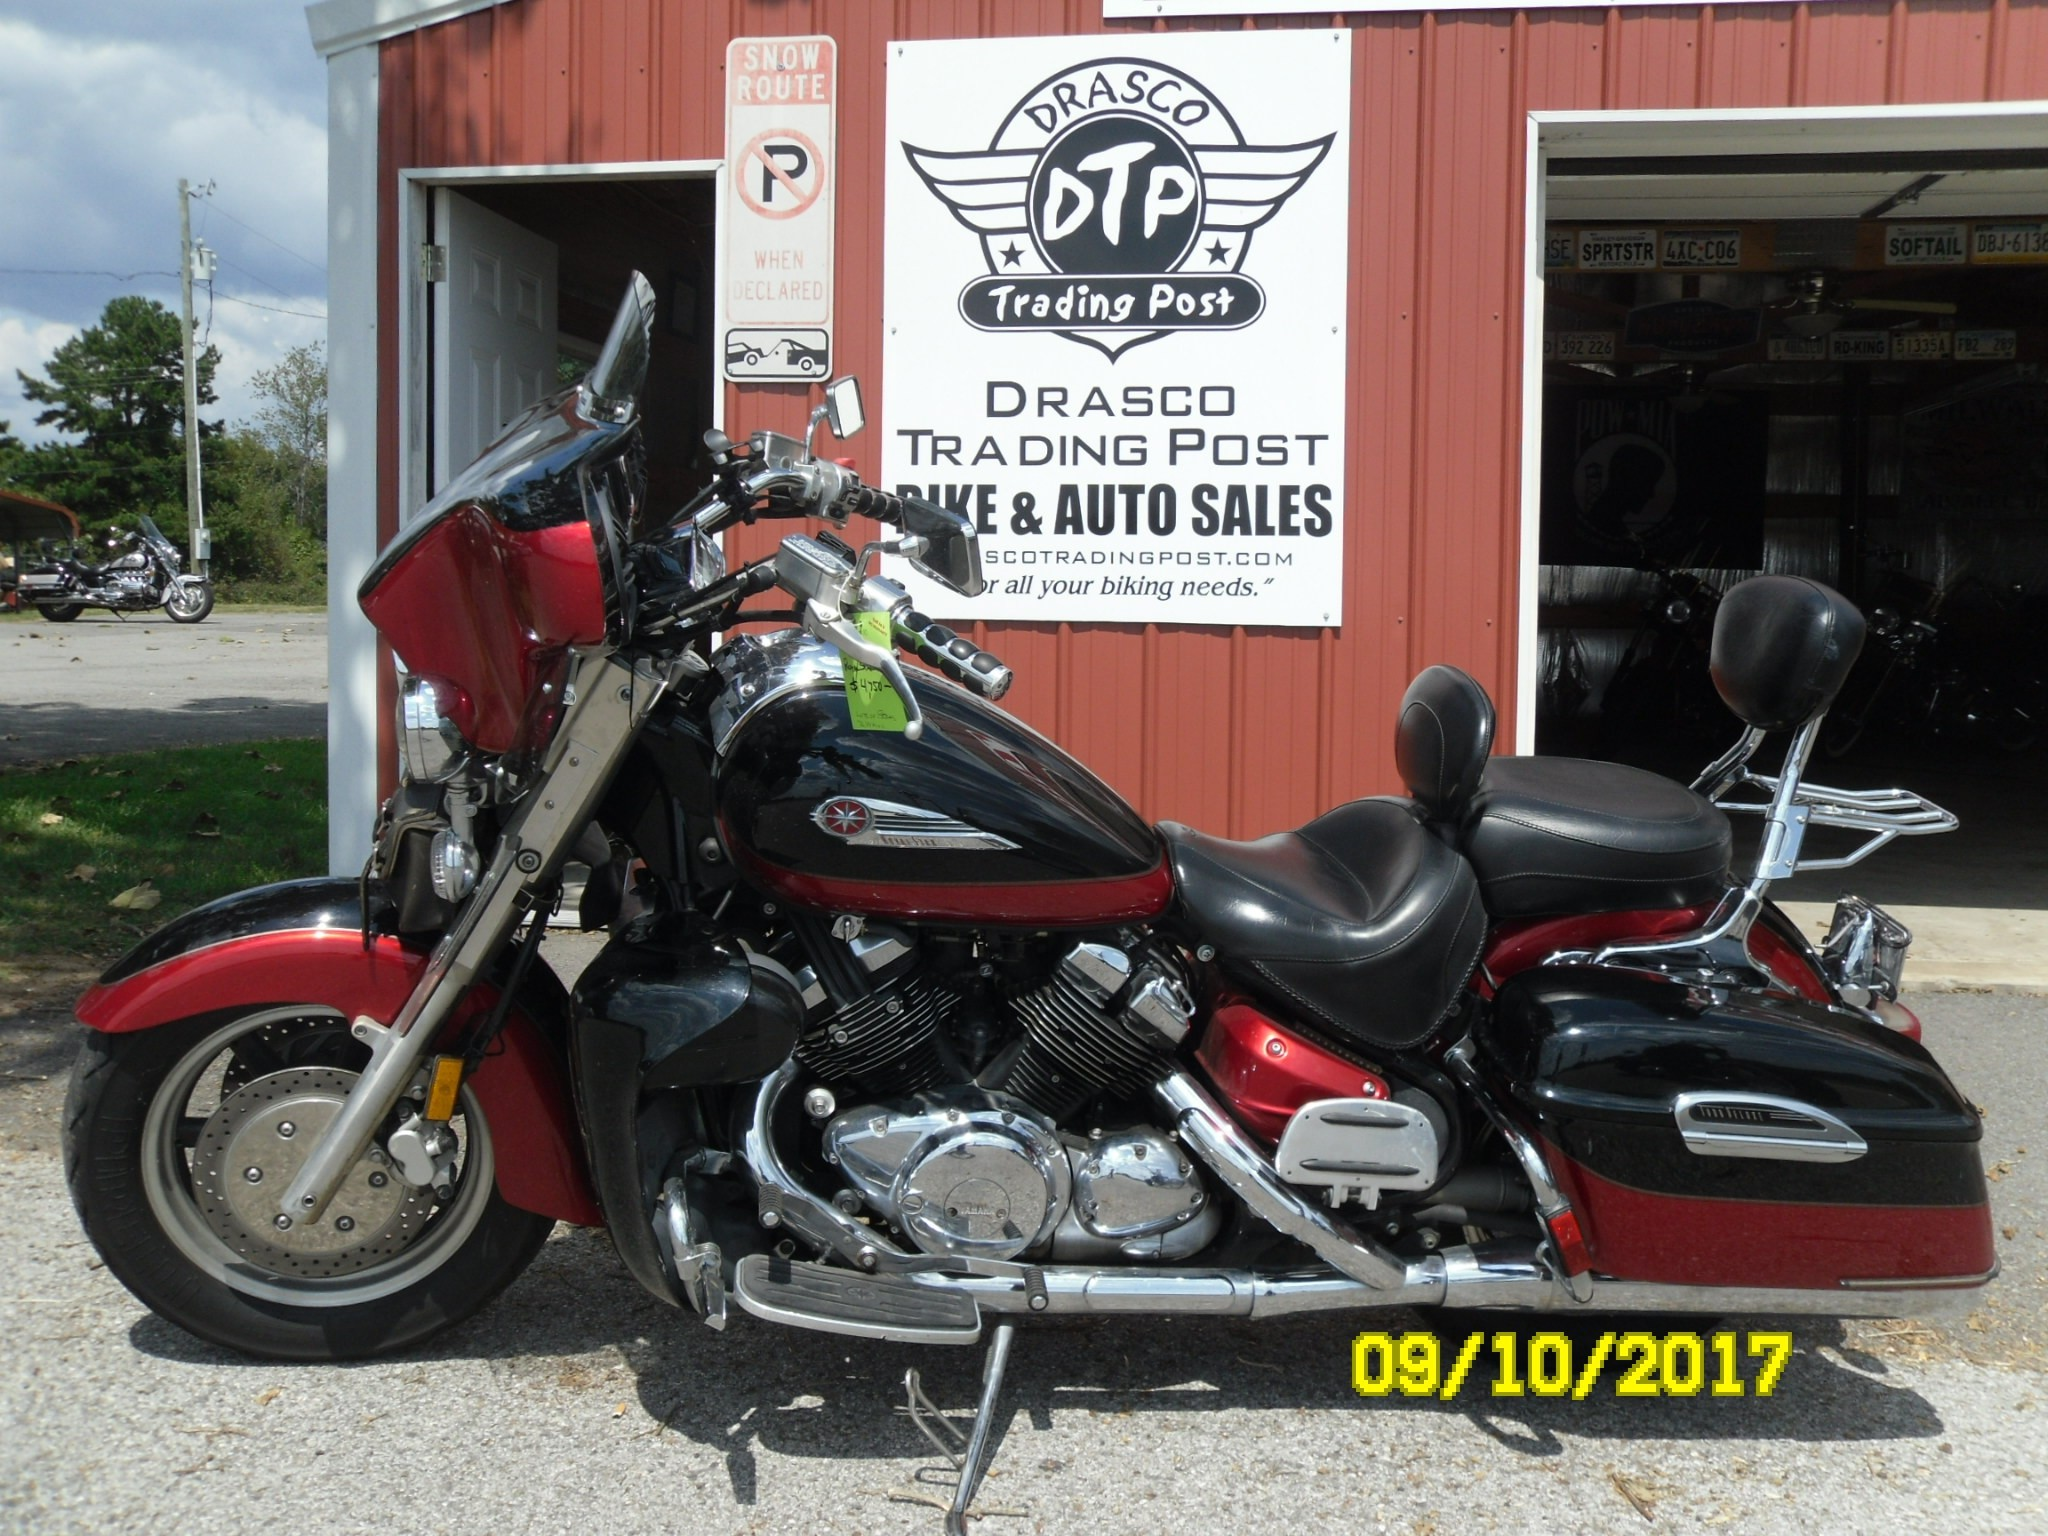 2005 Yamaha Royal Star Tour Deluxe $3,999.00 - Pre-Owned